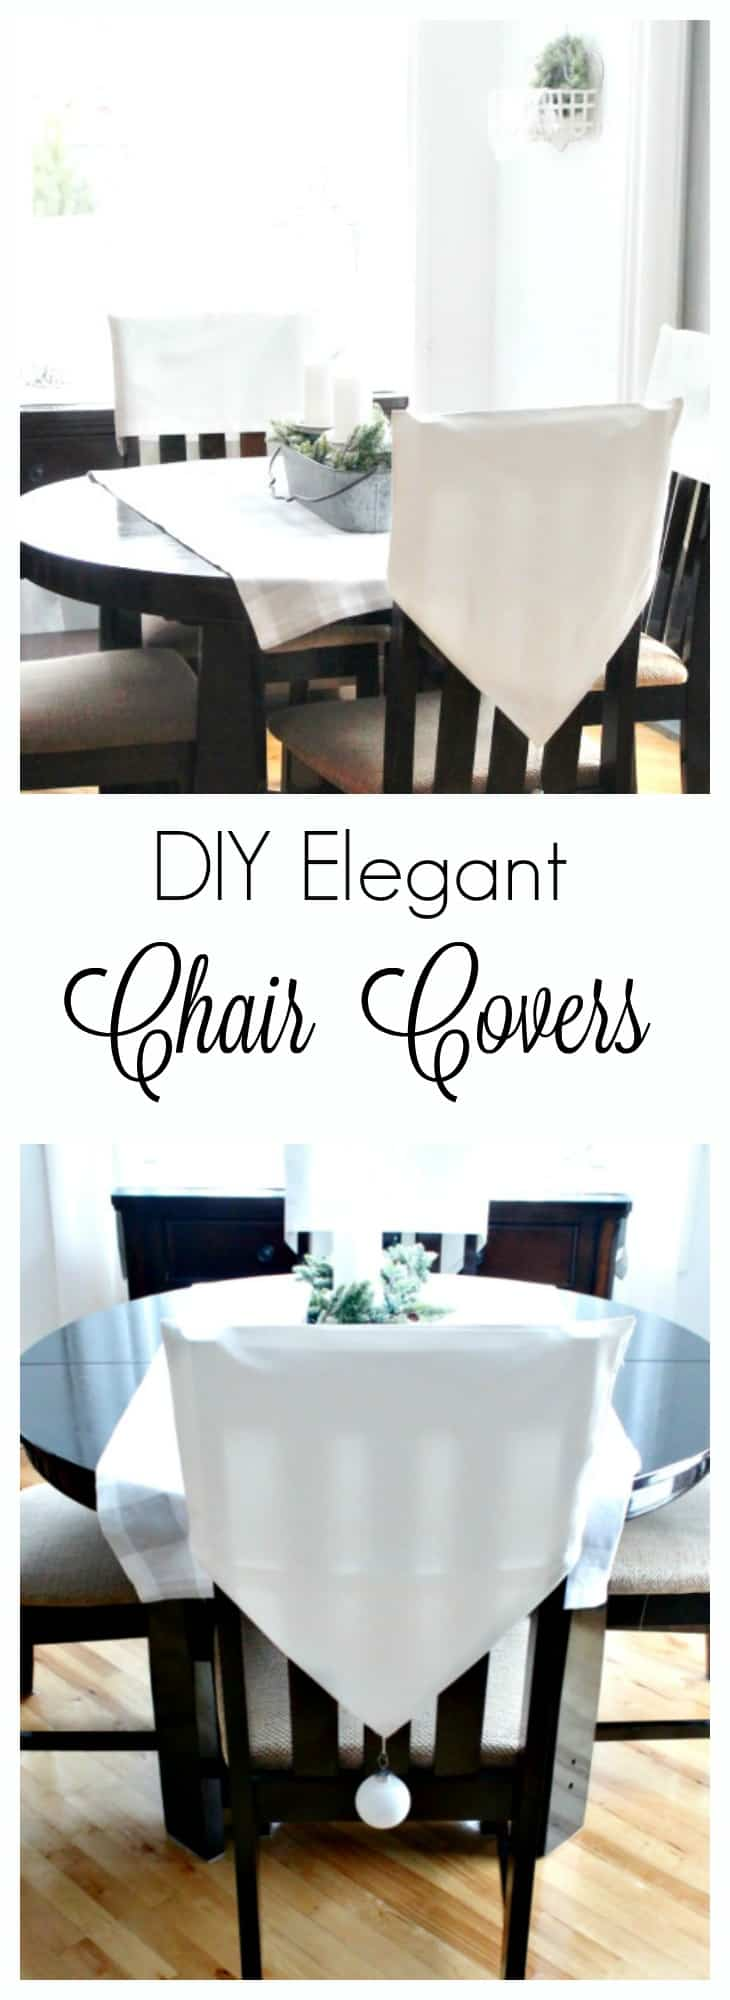 diy chair backs, how to make chair back covers, diy chair covers, Christmas Chair Covers, White chair back covers